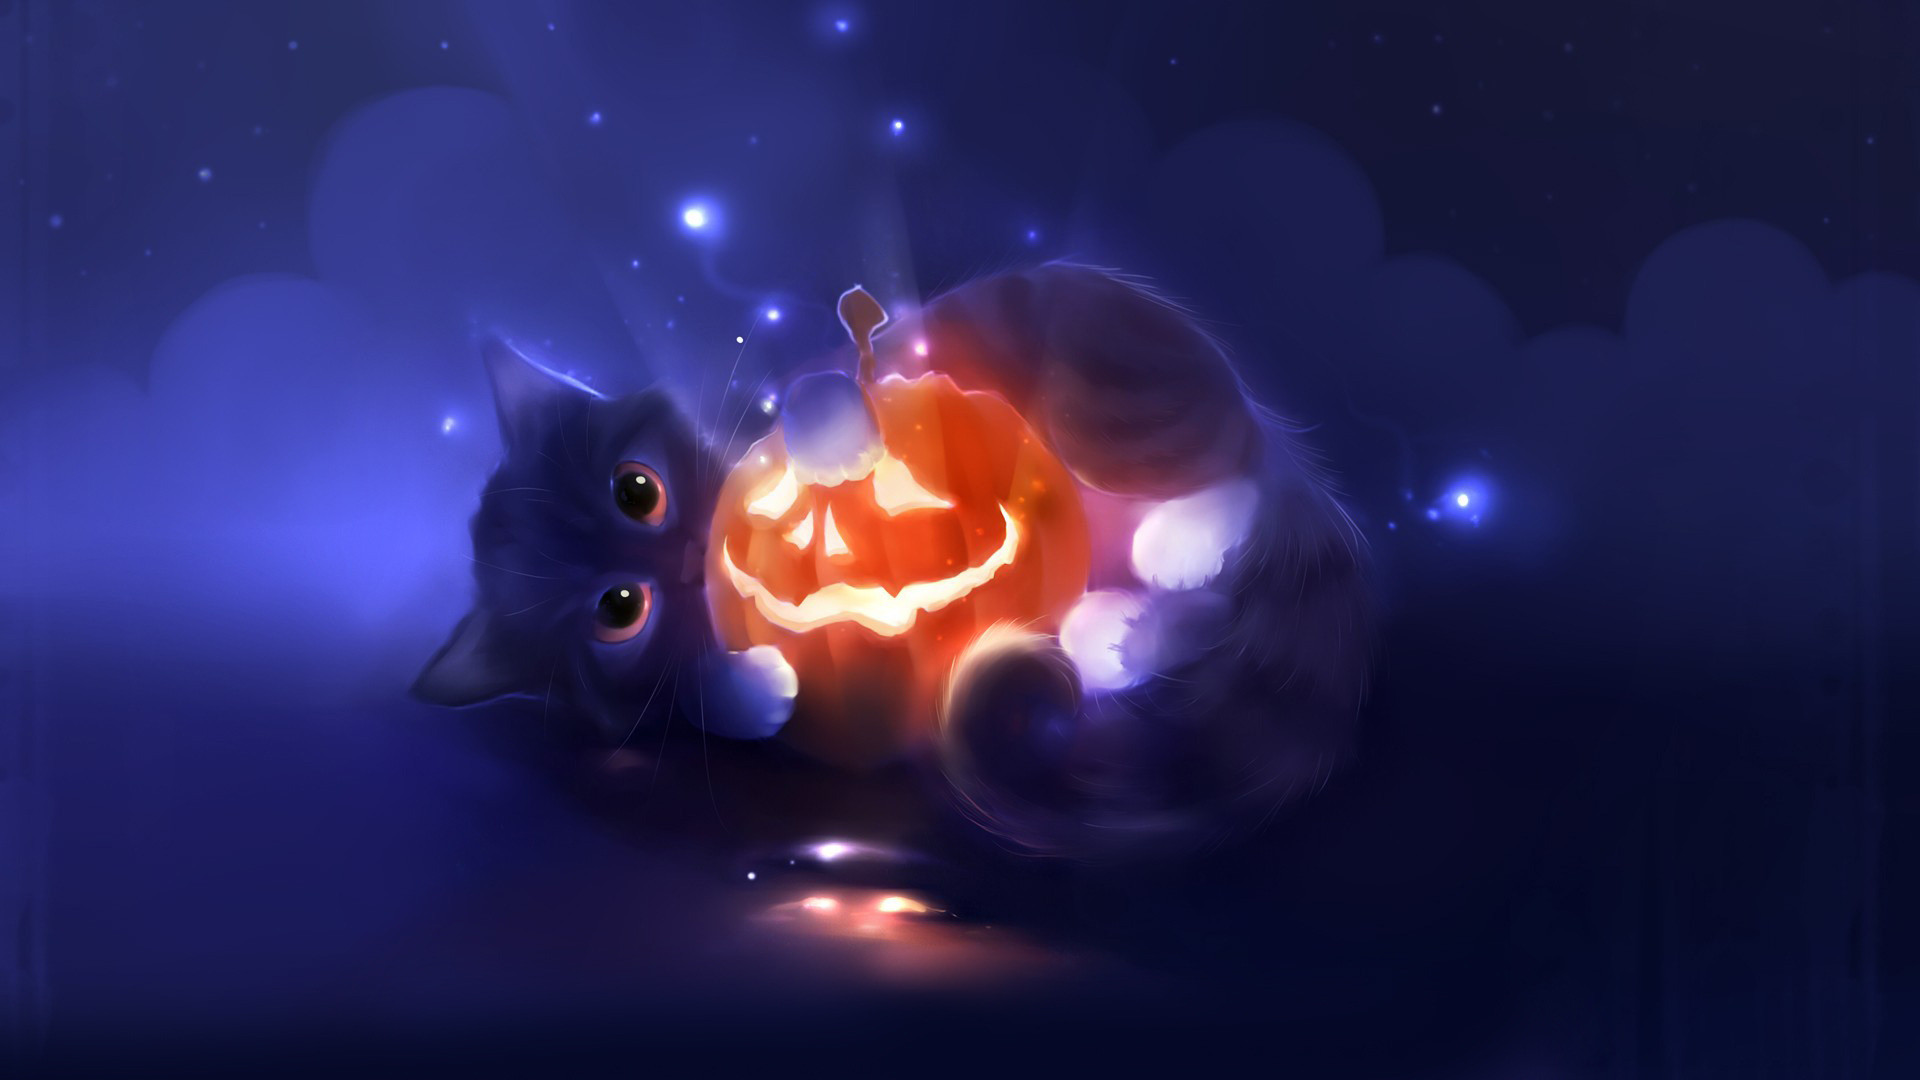 1920x1080 Cute Halloween Images